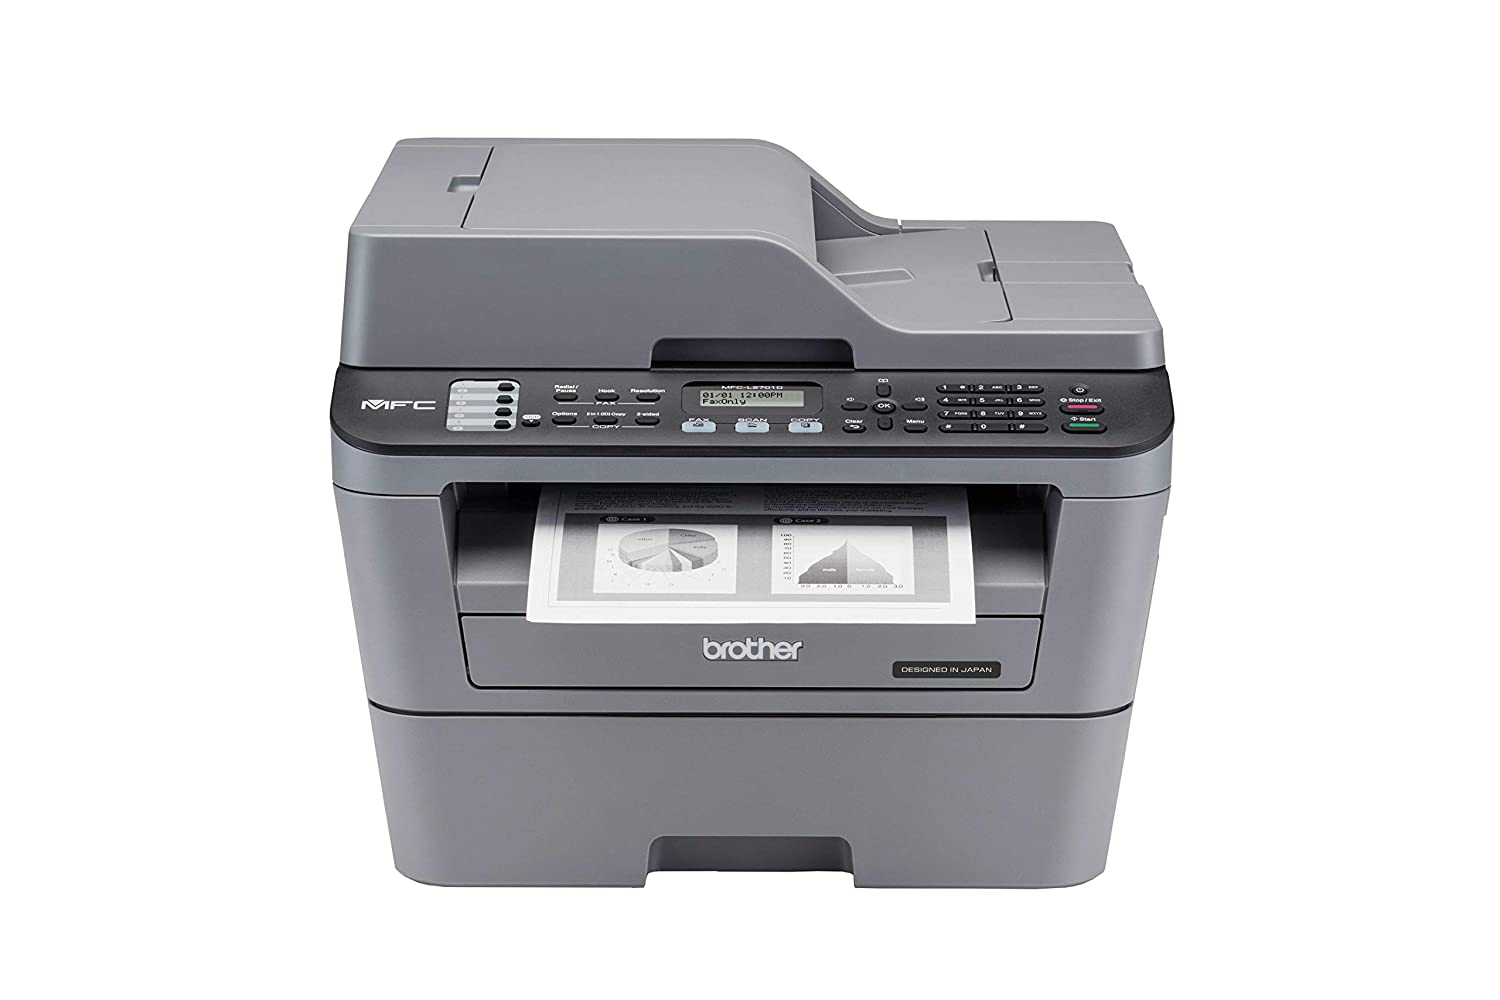 Brother MFC L2701D Multi-Function Monochrome Laser Printer with Auto Duplex Printing Image